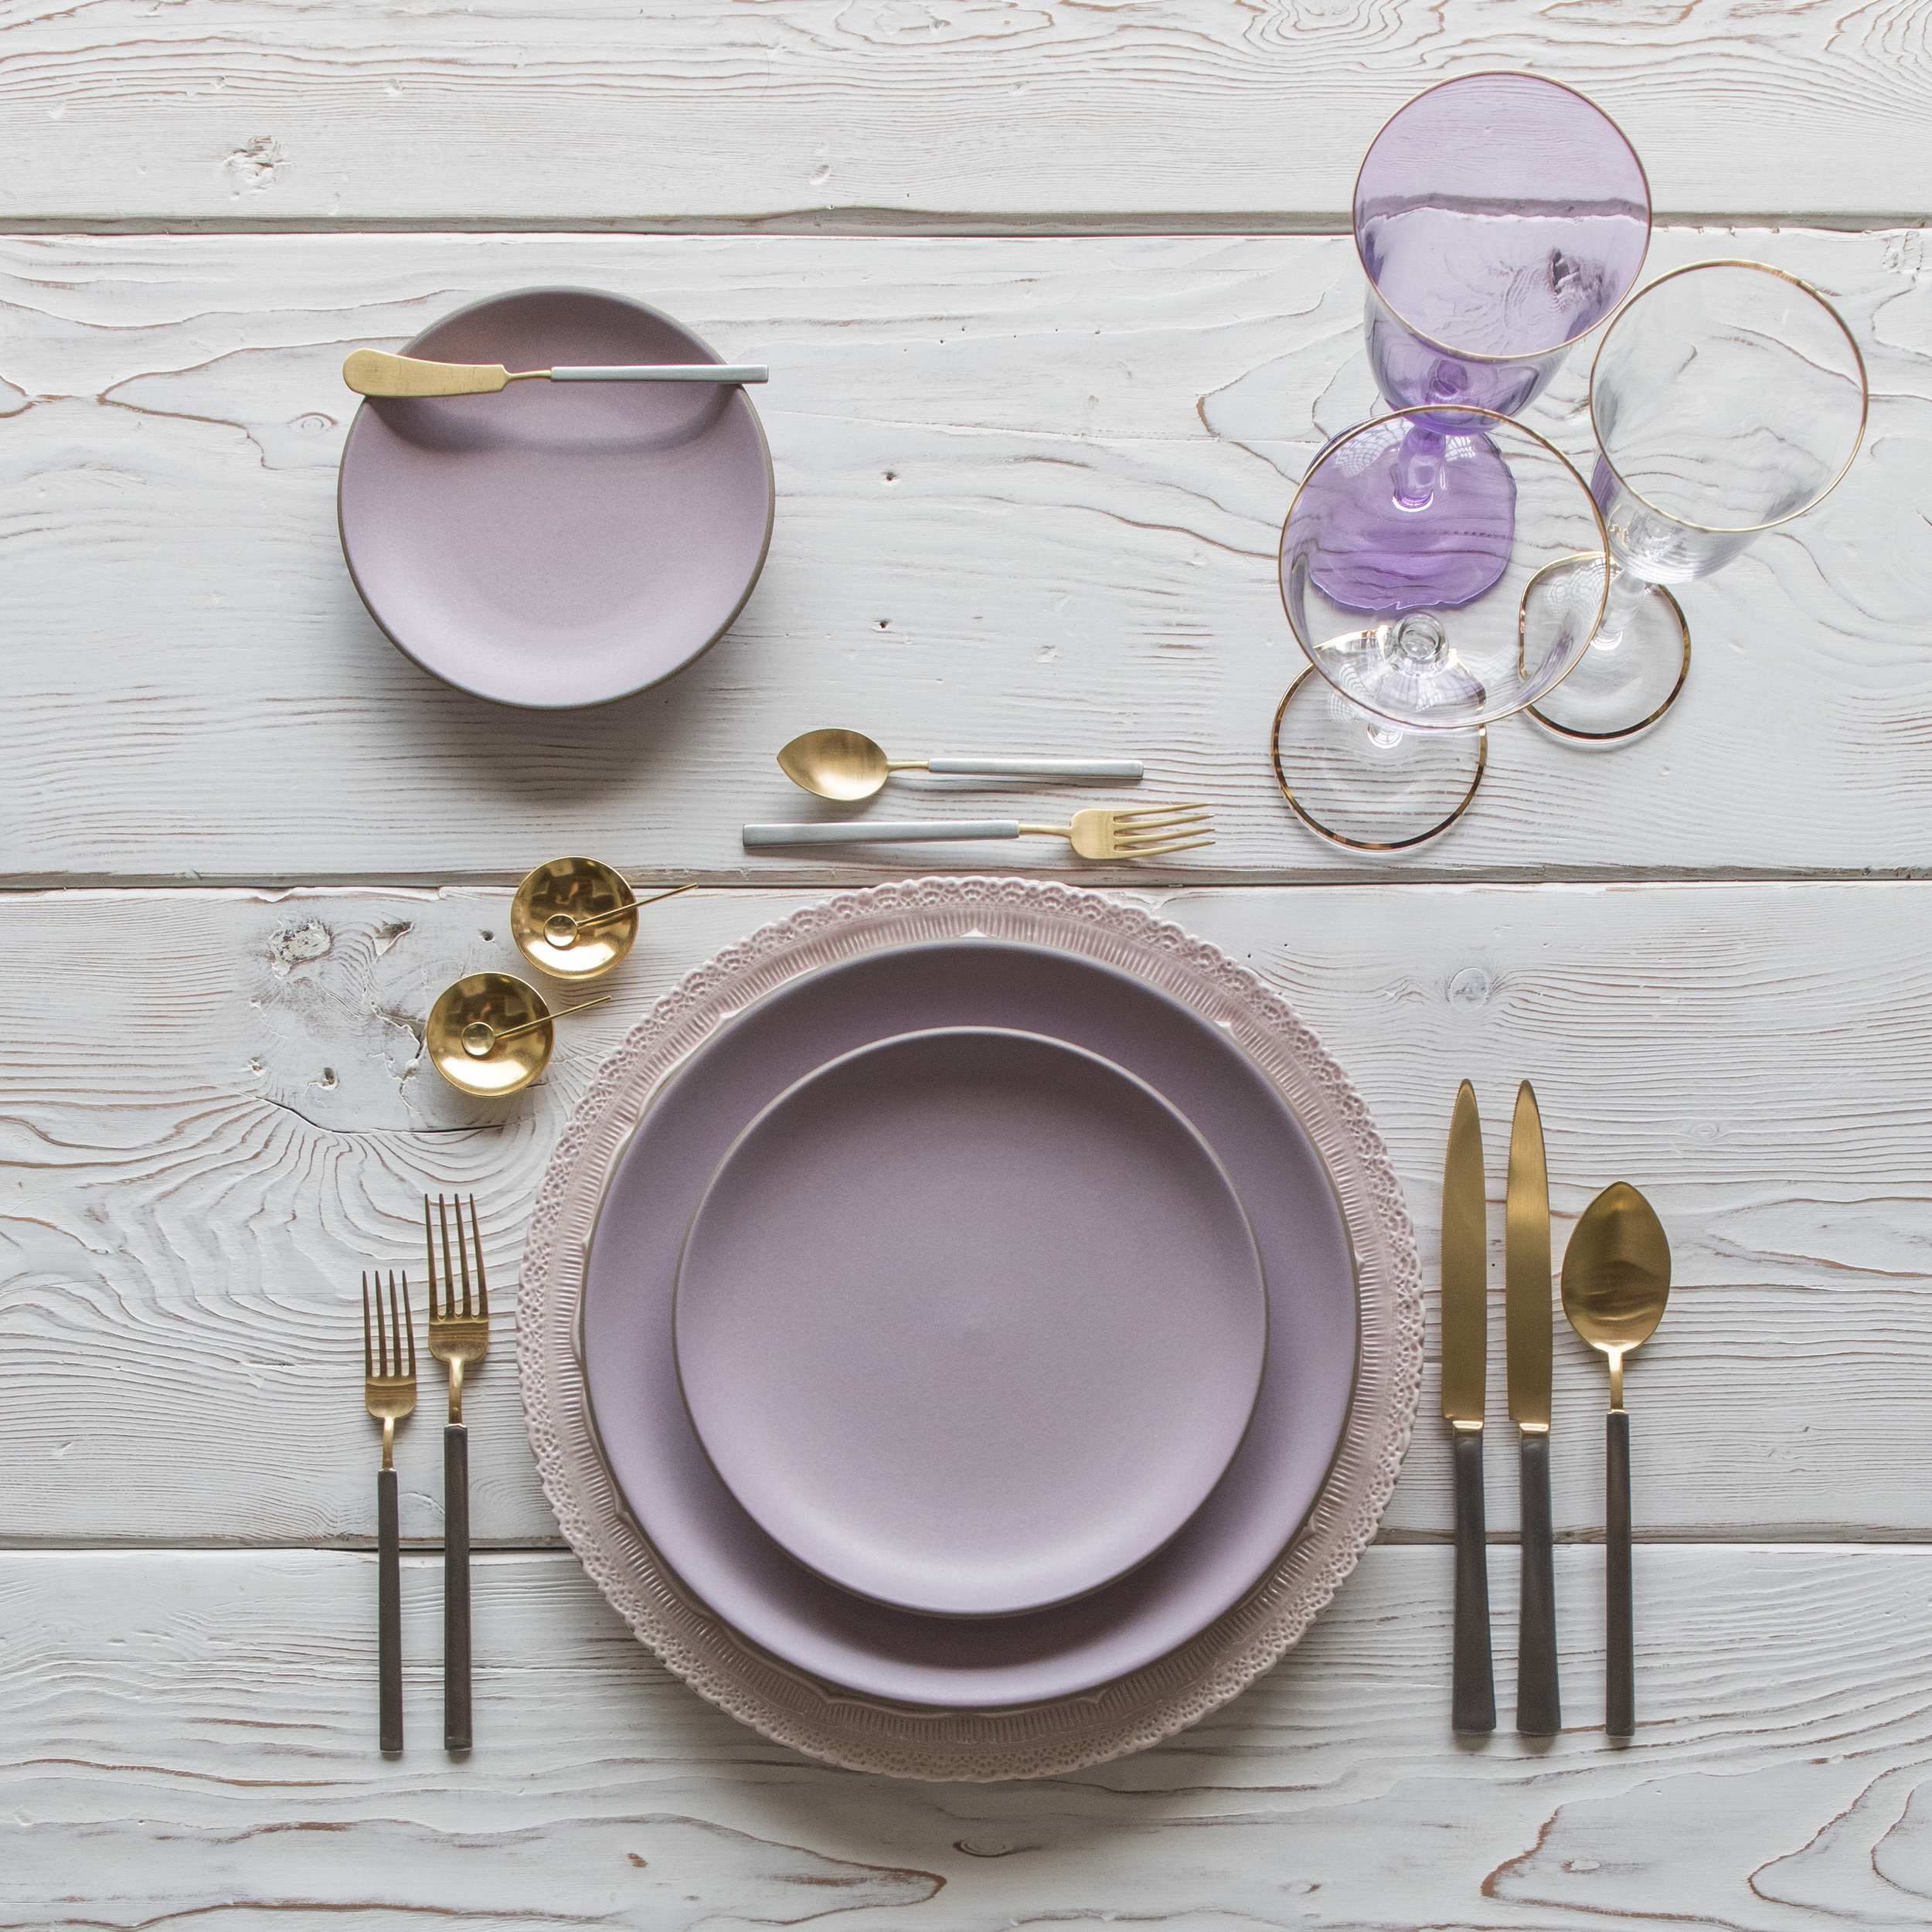 RENT: Lace Chargers in Blush + Custom Heath Ceramics in Wildflower + Axel Flatware in Matte 24k Gold/Silver + Chloe 24k Gold Rimmed Stemware + Chloe 24k Gold Rimed Goblet in Lilac + 14k Gold Salt Cellars + Tiny Gold Spoons  SHOP:Chloe 24k Gold Rimmed Stemware +14k Gold Salt Cellars + Tiny Gold Spoons